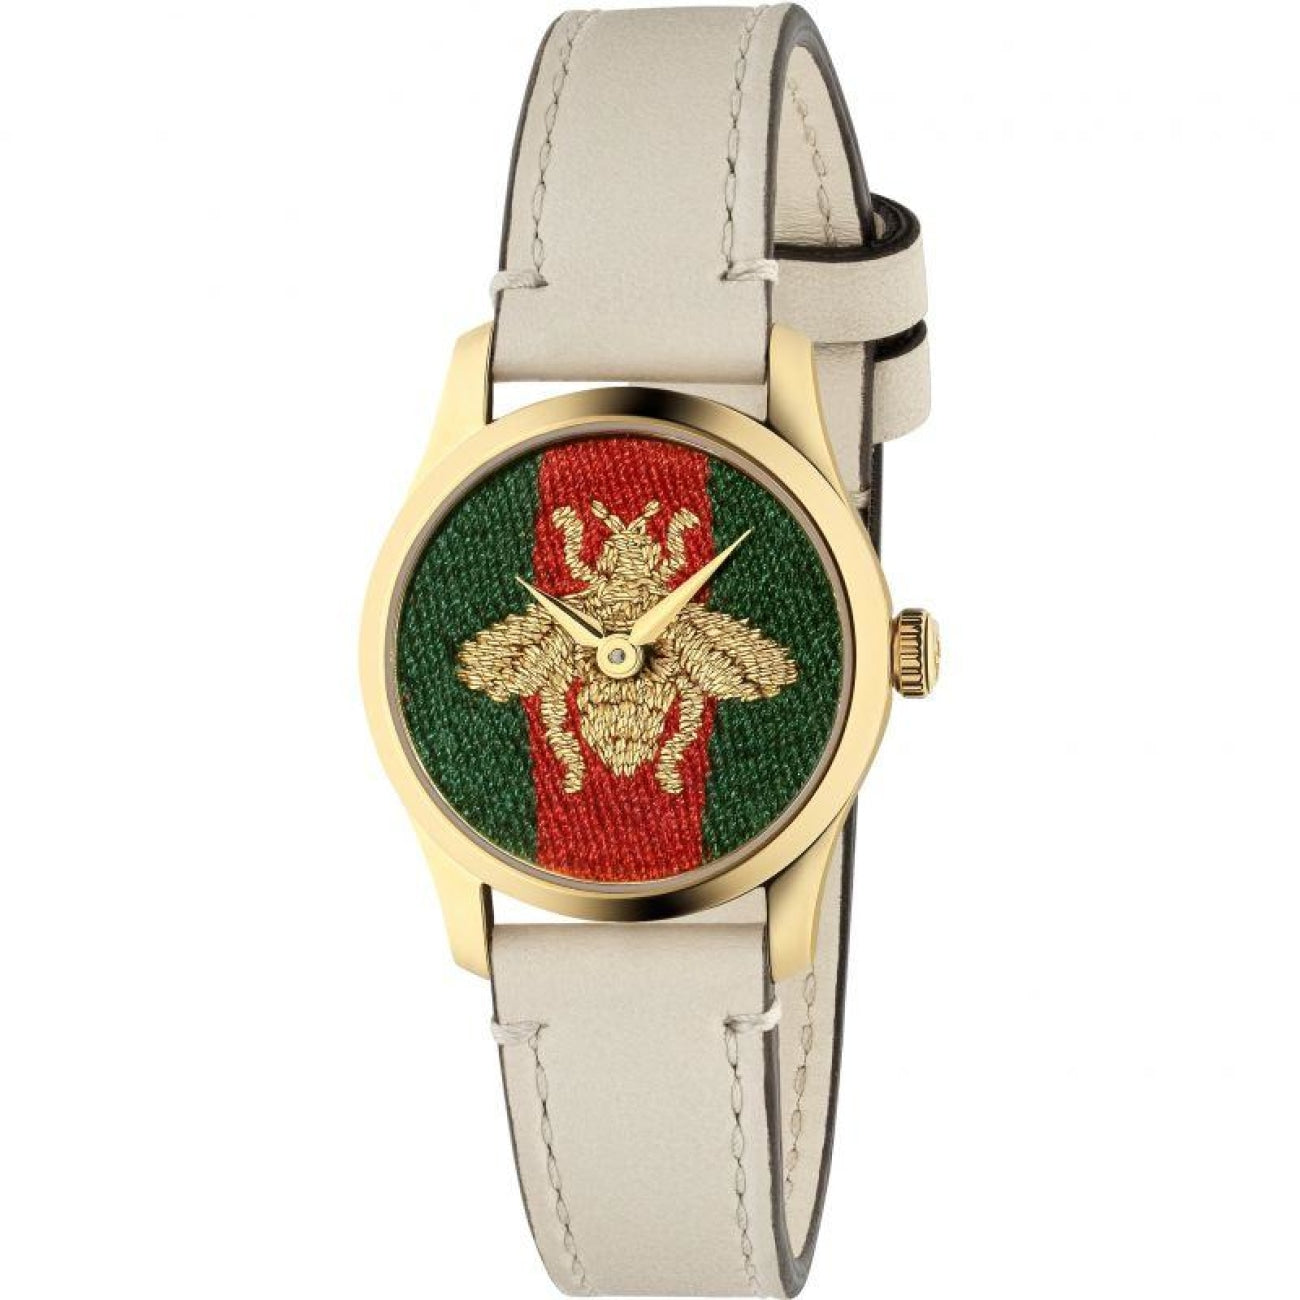 Gucci Watches - G-Timeless Watch 27mm | Manfredi Jewels